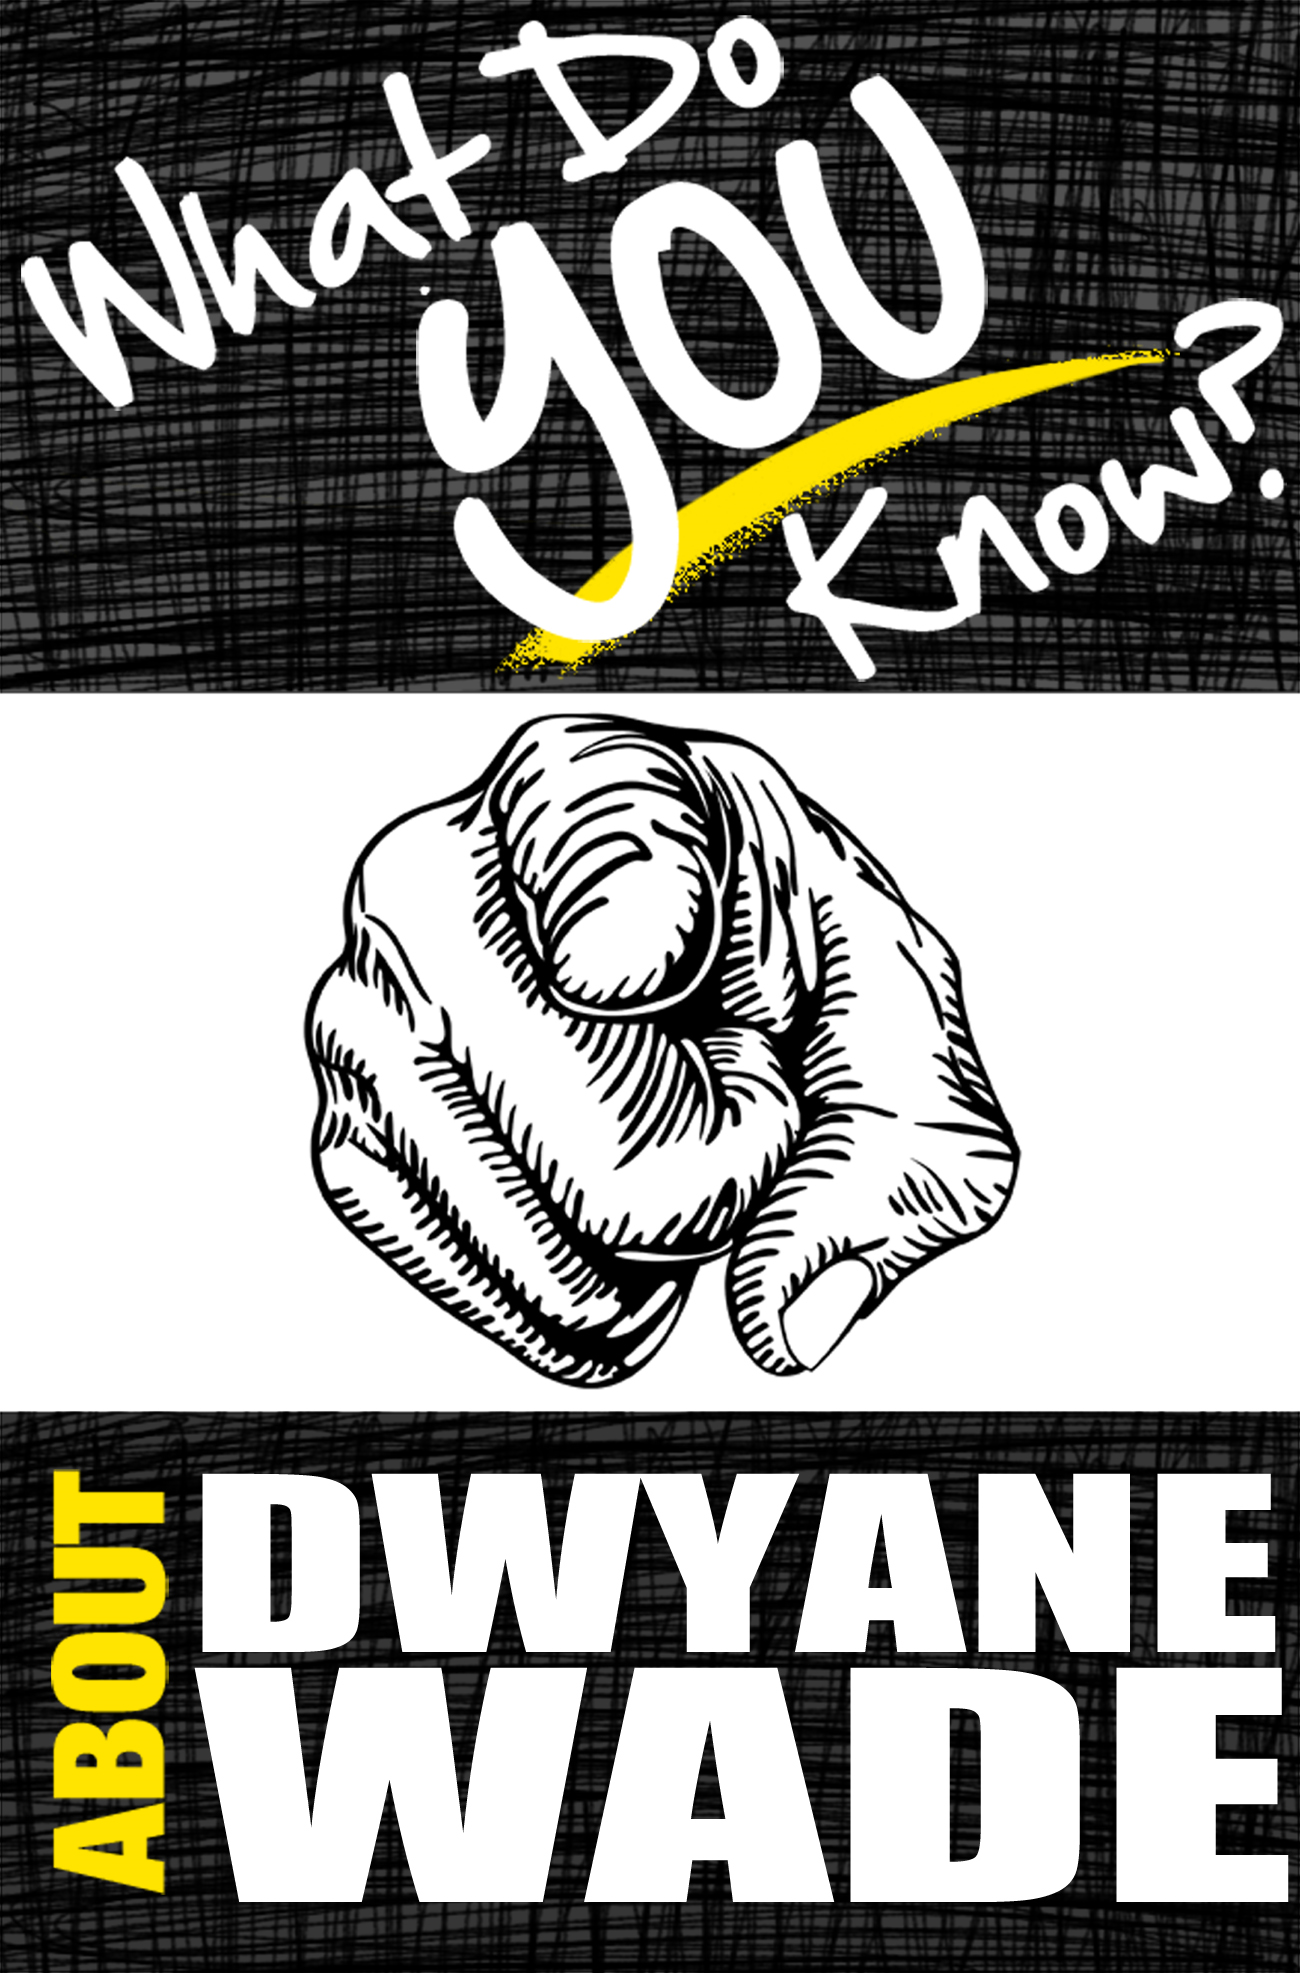 What Do You Know About Dwyane Wade?